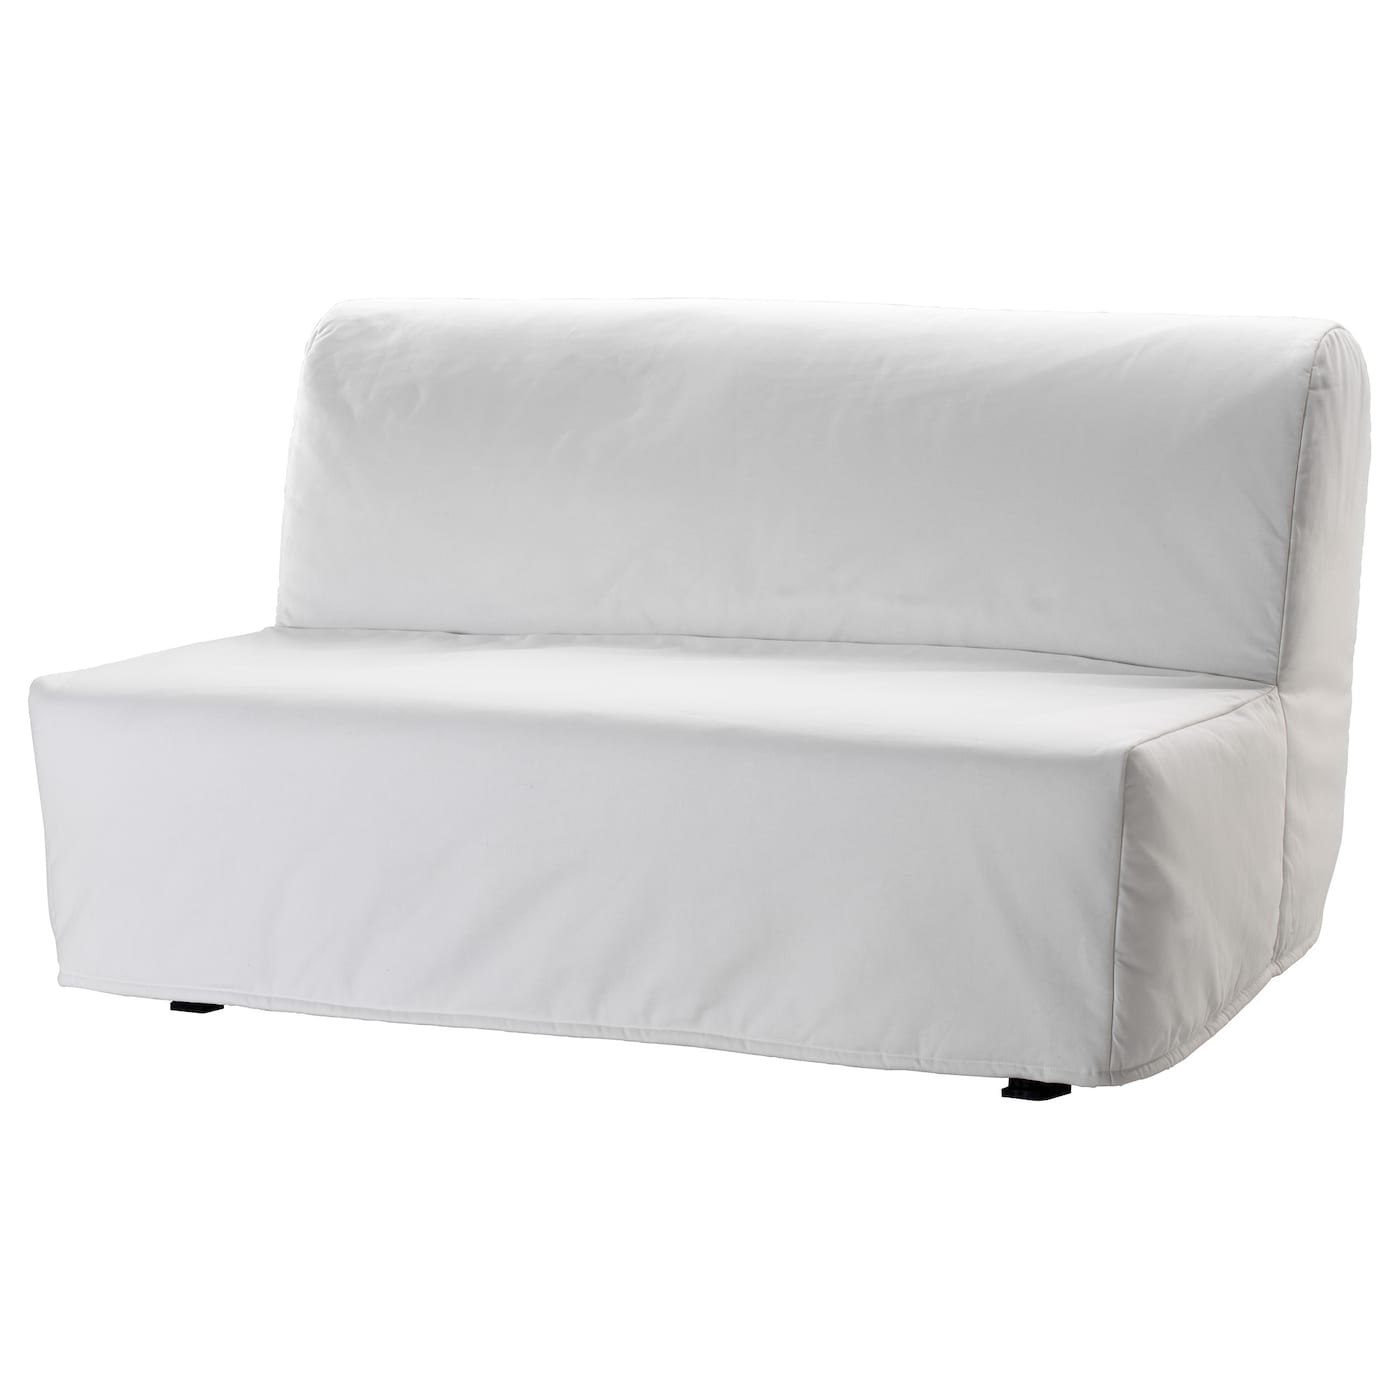 Lycksele two seat sofa bed cover ransta white ikea for Housse clic clac ikea